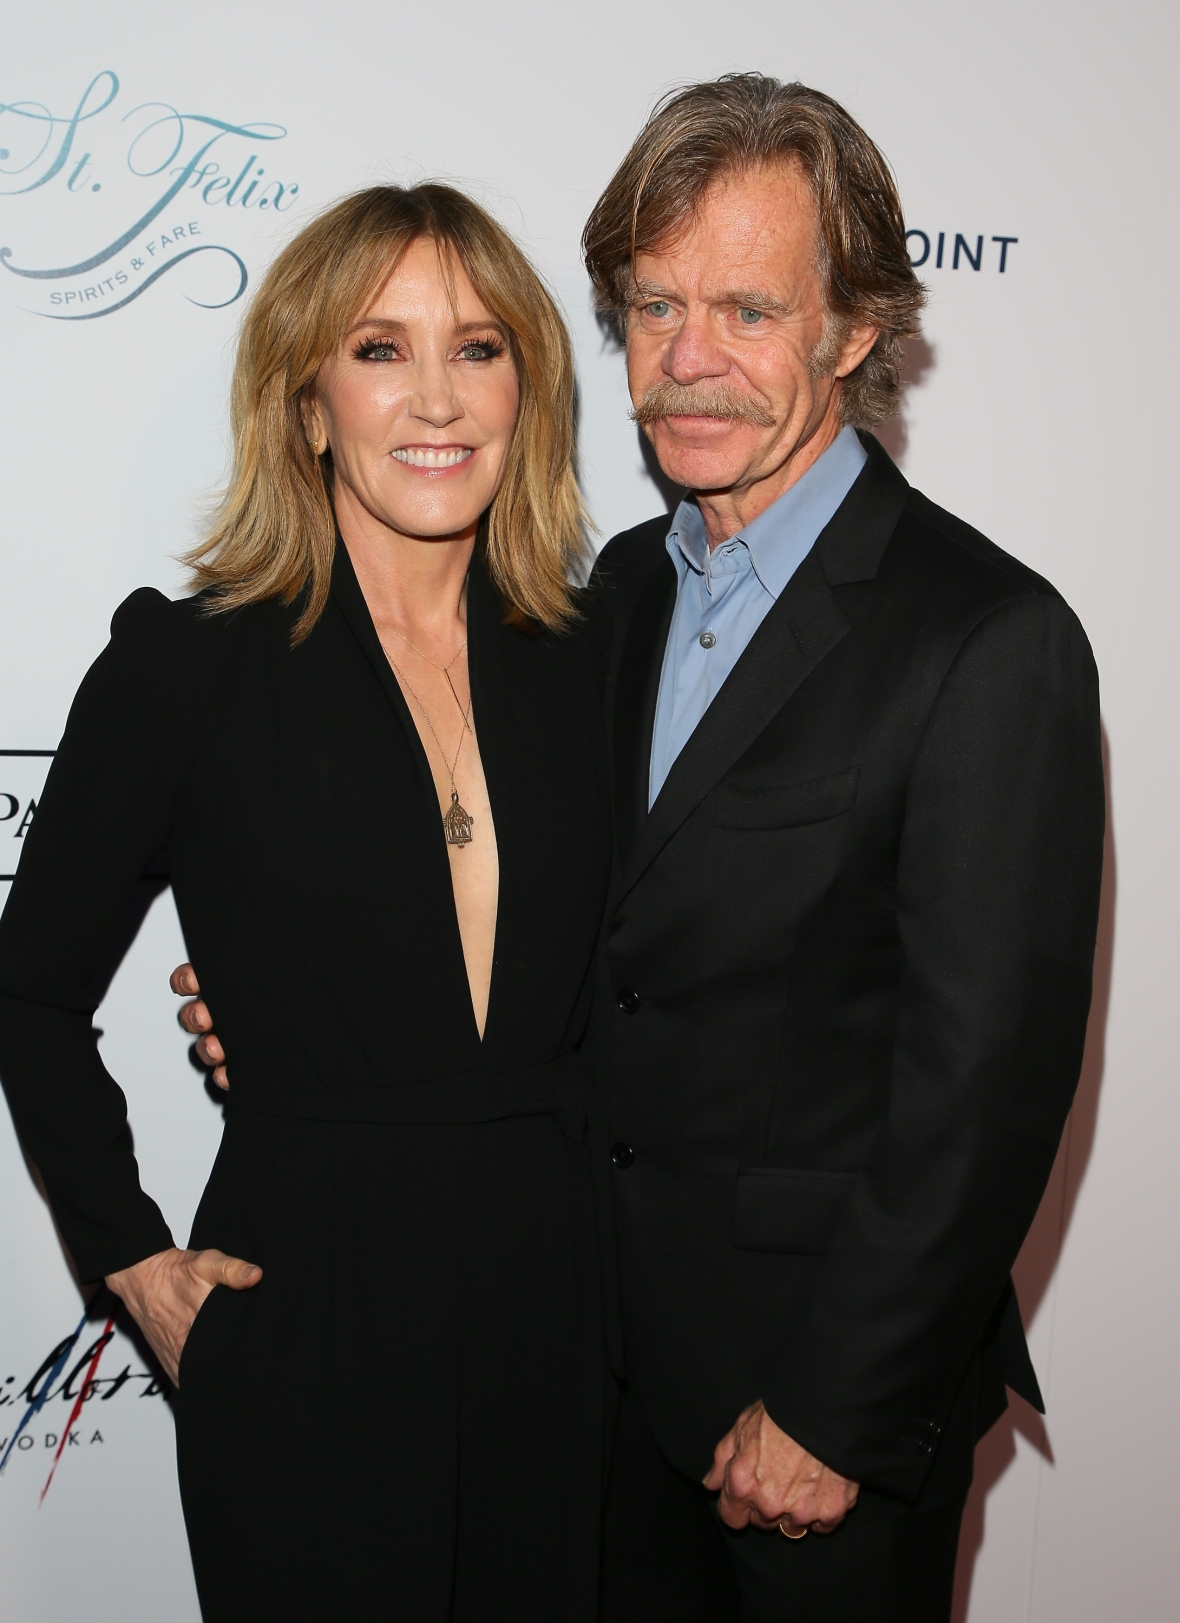 felicity huffman and william h. macy getty images